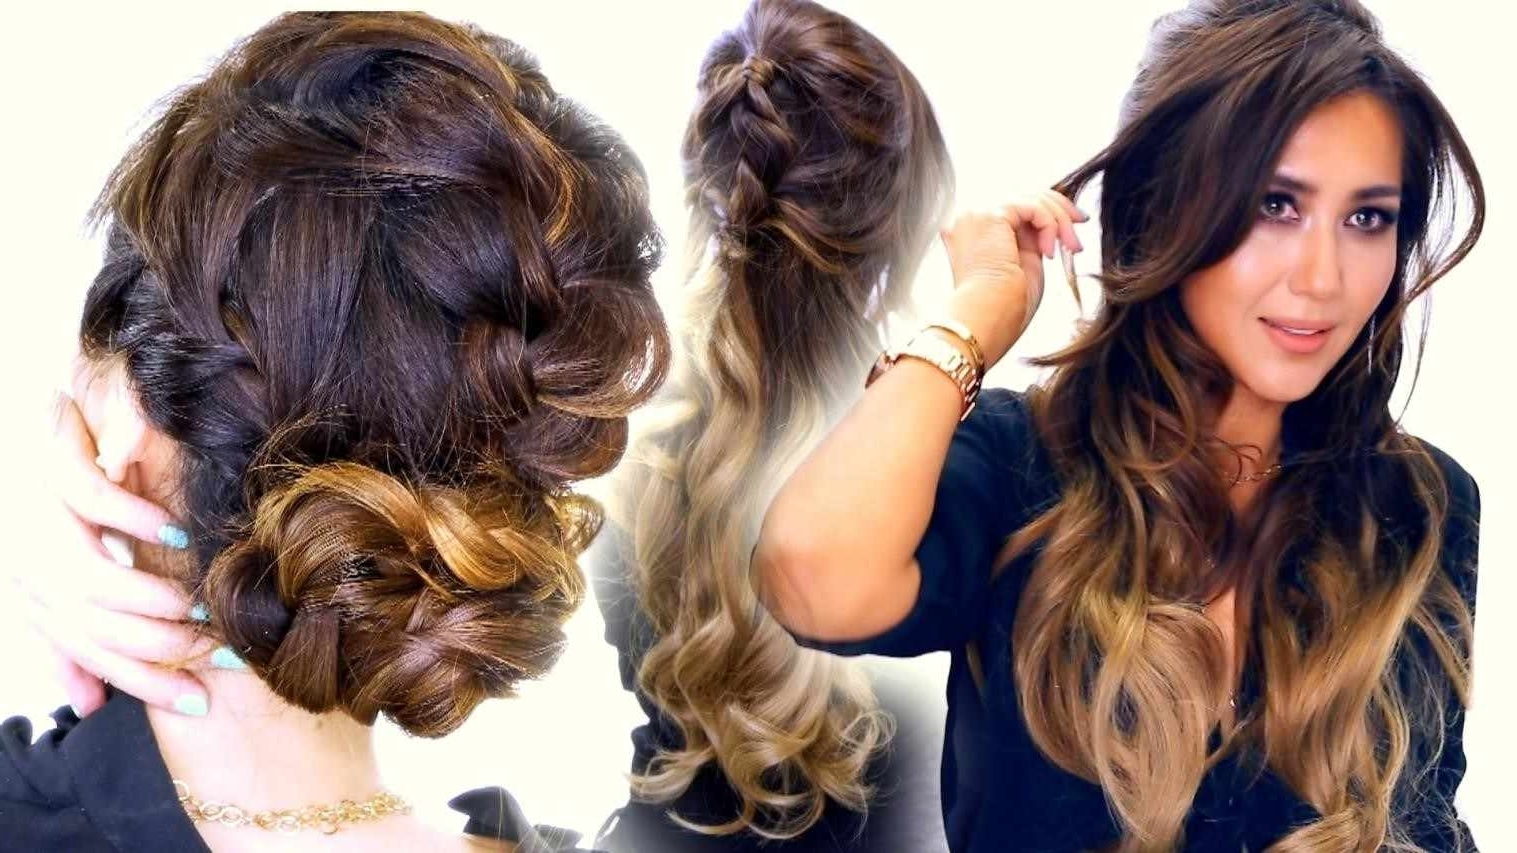 And More Rope Cute Bun Hairstyles With Braids Twisted Pinwheel Bun Regarding Cute Bun Updo Hairstyles (View 4 of 15)